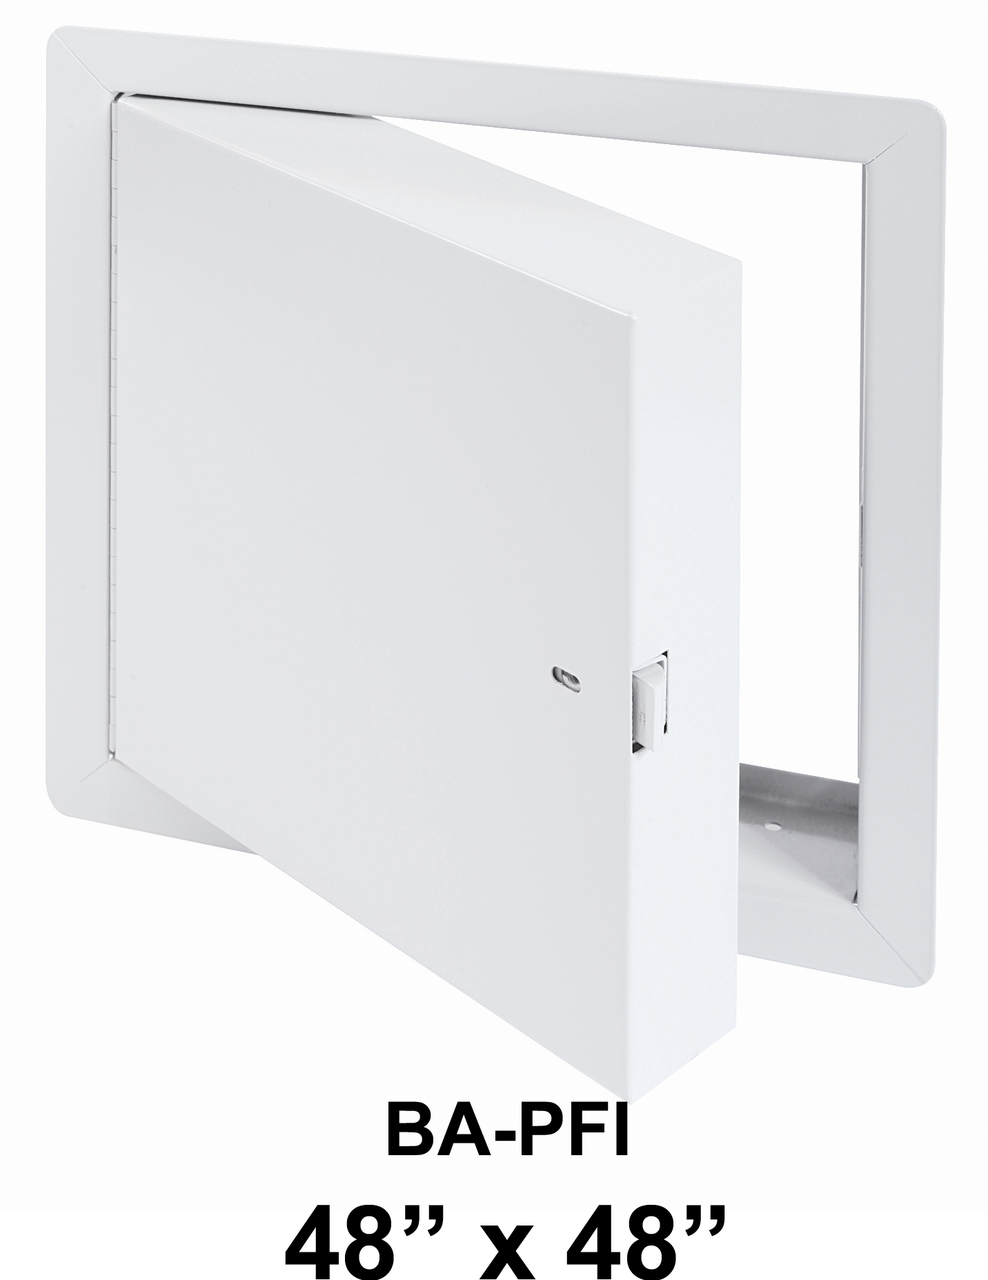 Best Access Doors Fire Rated BA-PFI 48″ x 48″Insulated with Flange